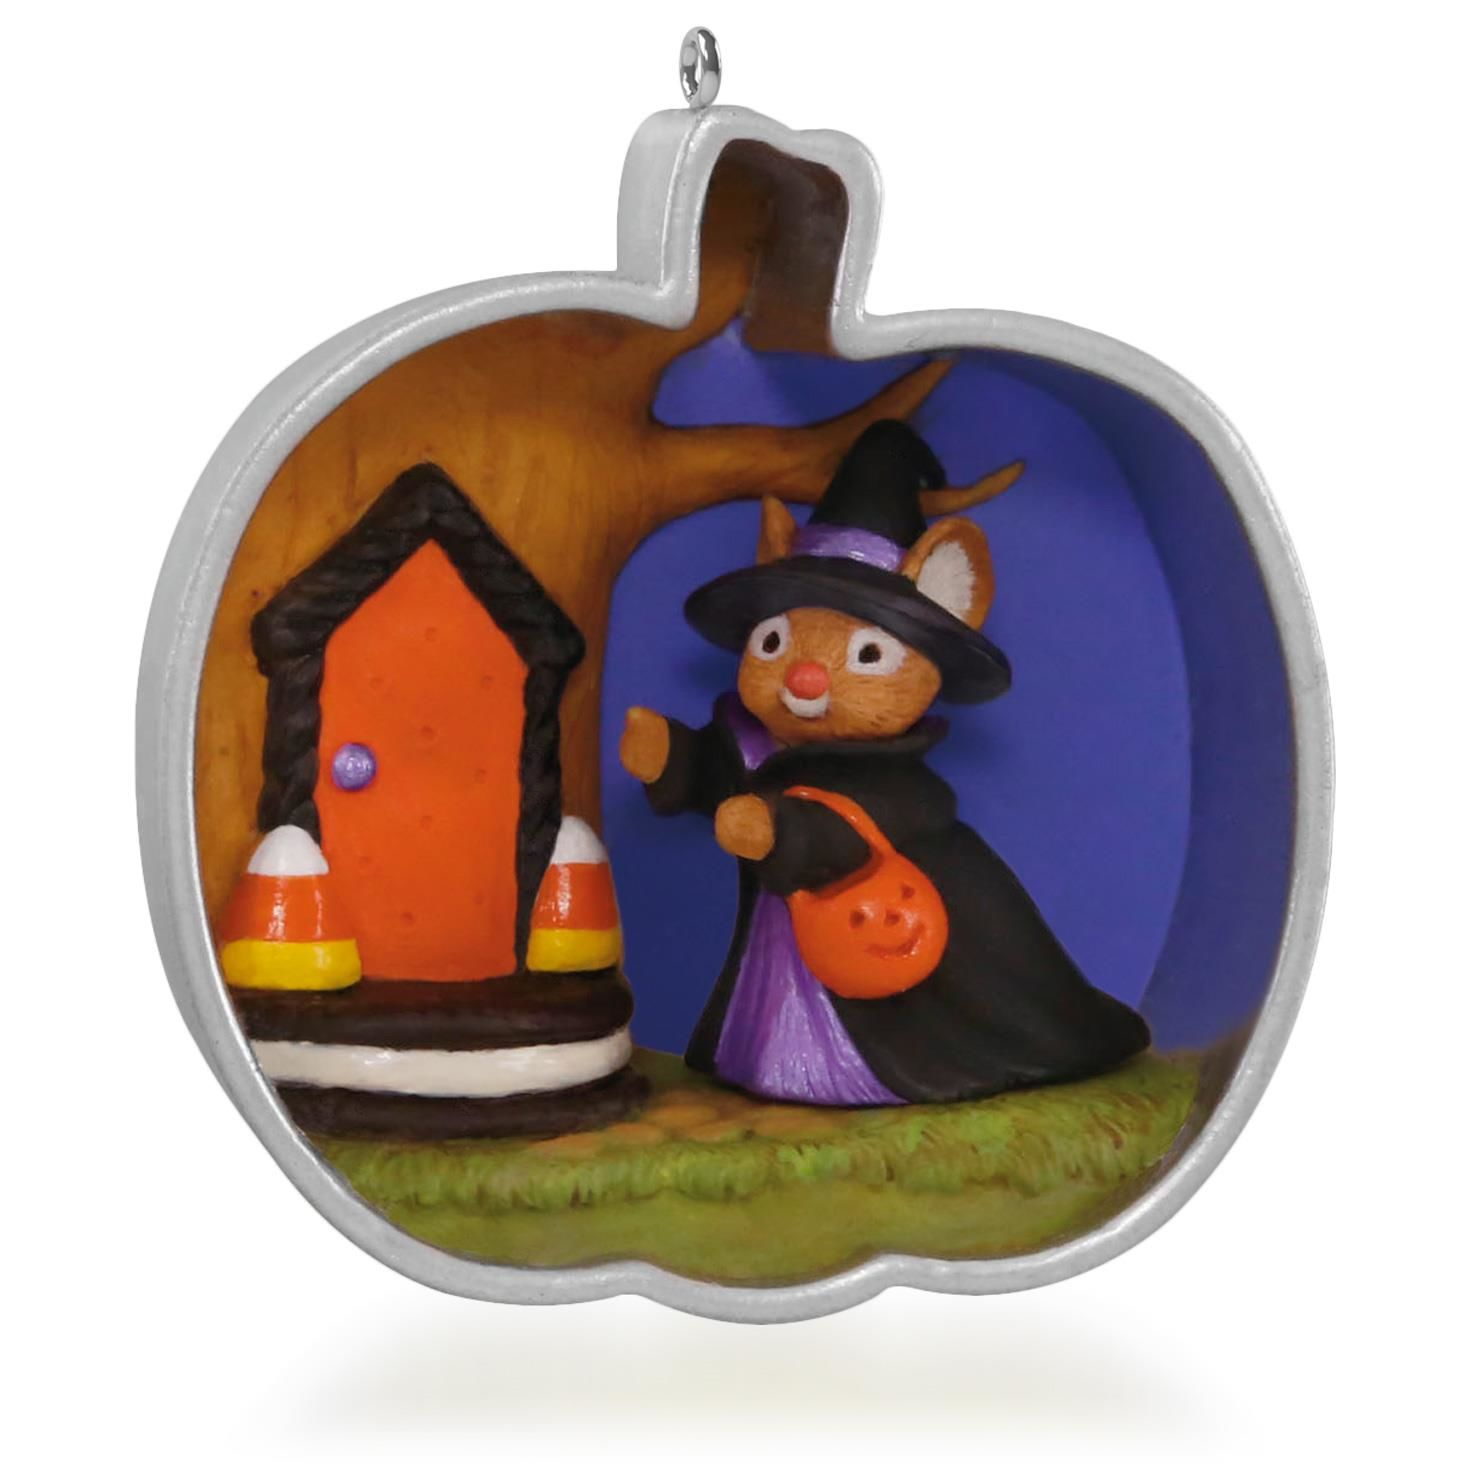 2015 Cookie Cutter Halloween Hallmark Keepsake Ornament Hooked On Hallmark Ornaments